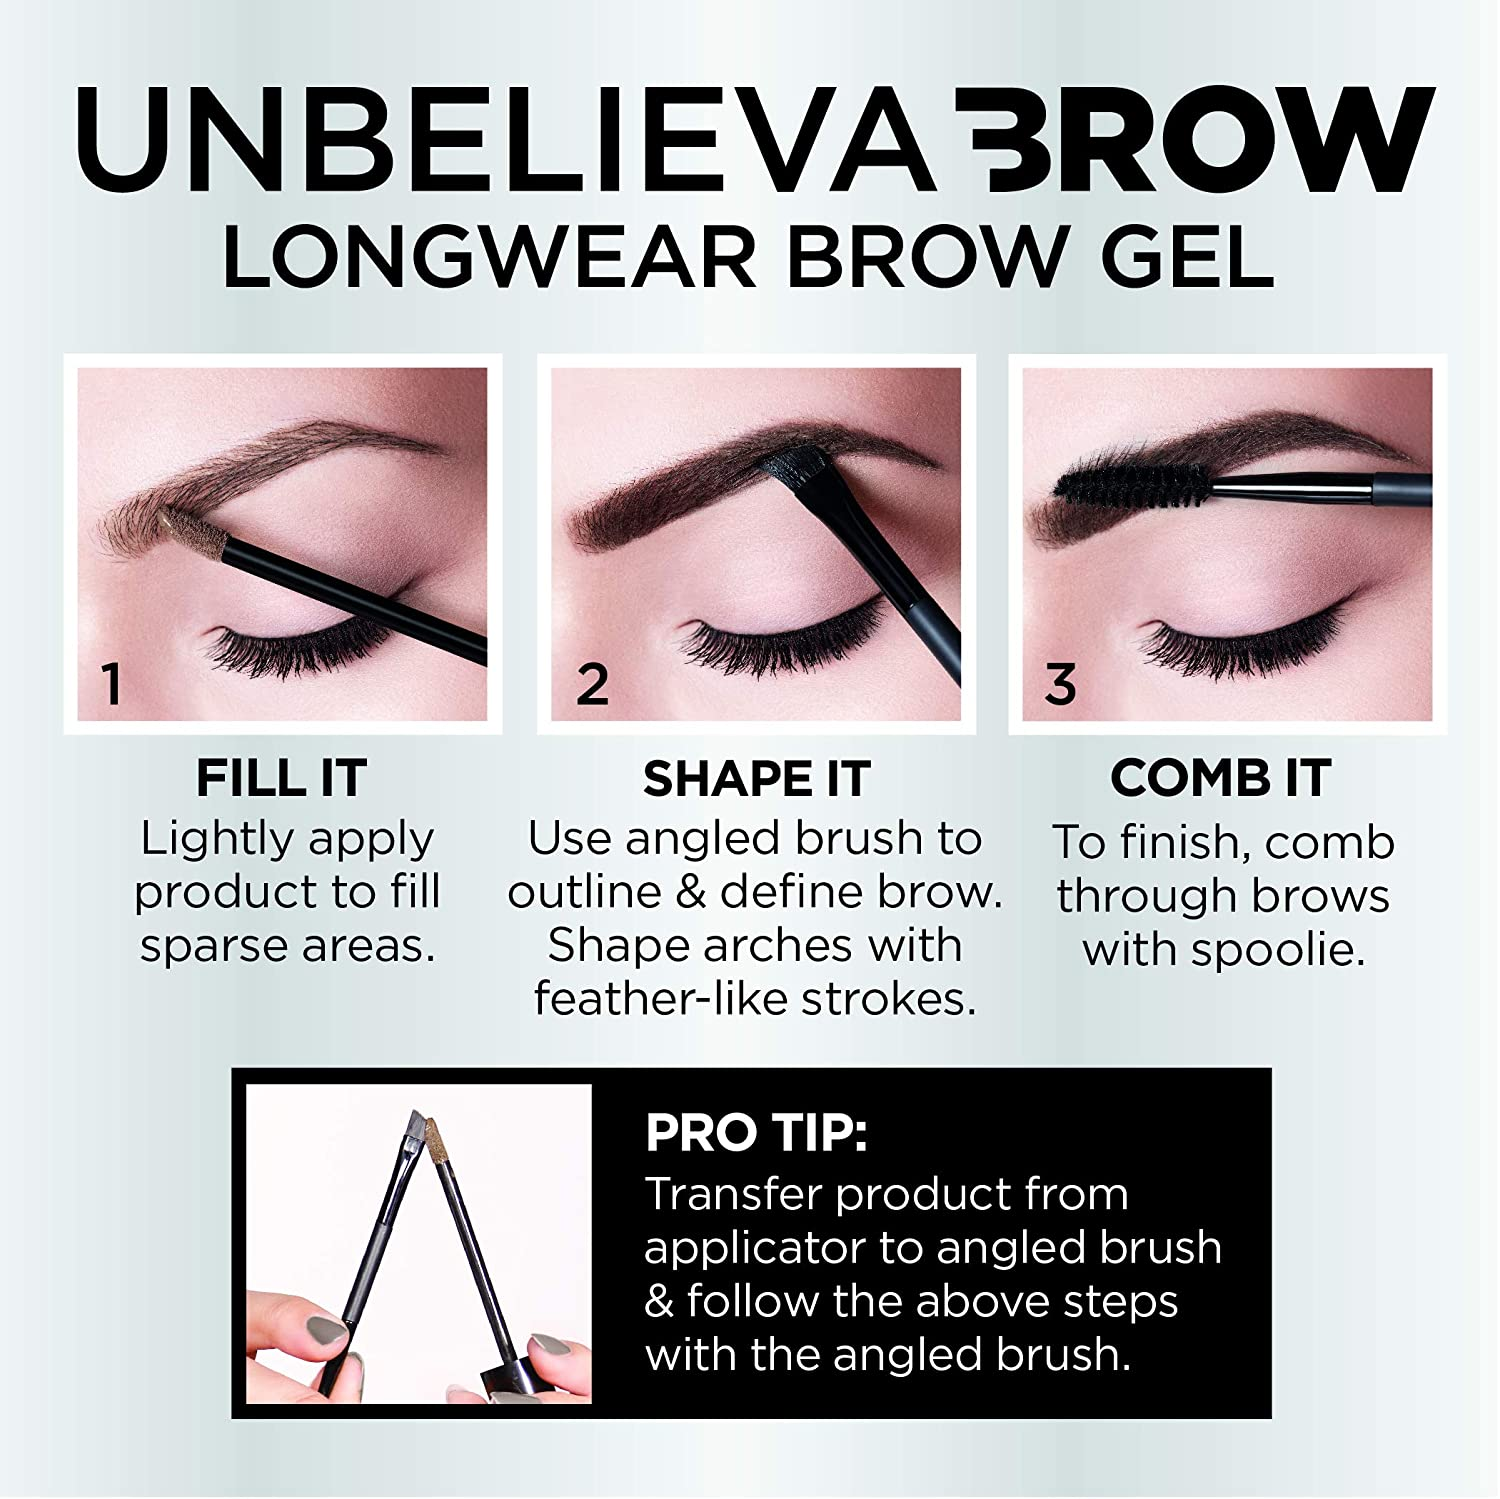 52fdb2d129af Amazon.com: L'Oreal Paris Unbelieva-Brow Tinted Brow Makeup, Longwear,  Waterproof Brow Gel, Sweat Resistant, Transfer Proof, Fills and Thickens  Brows, ...